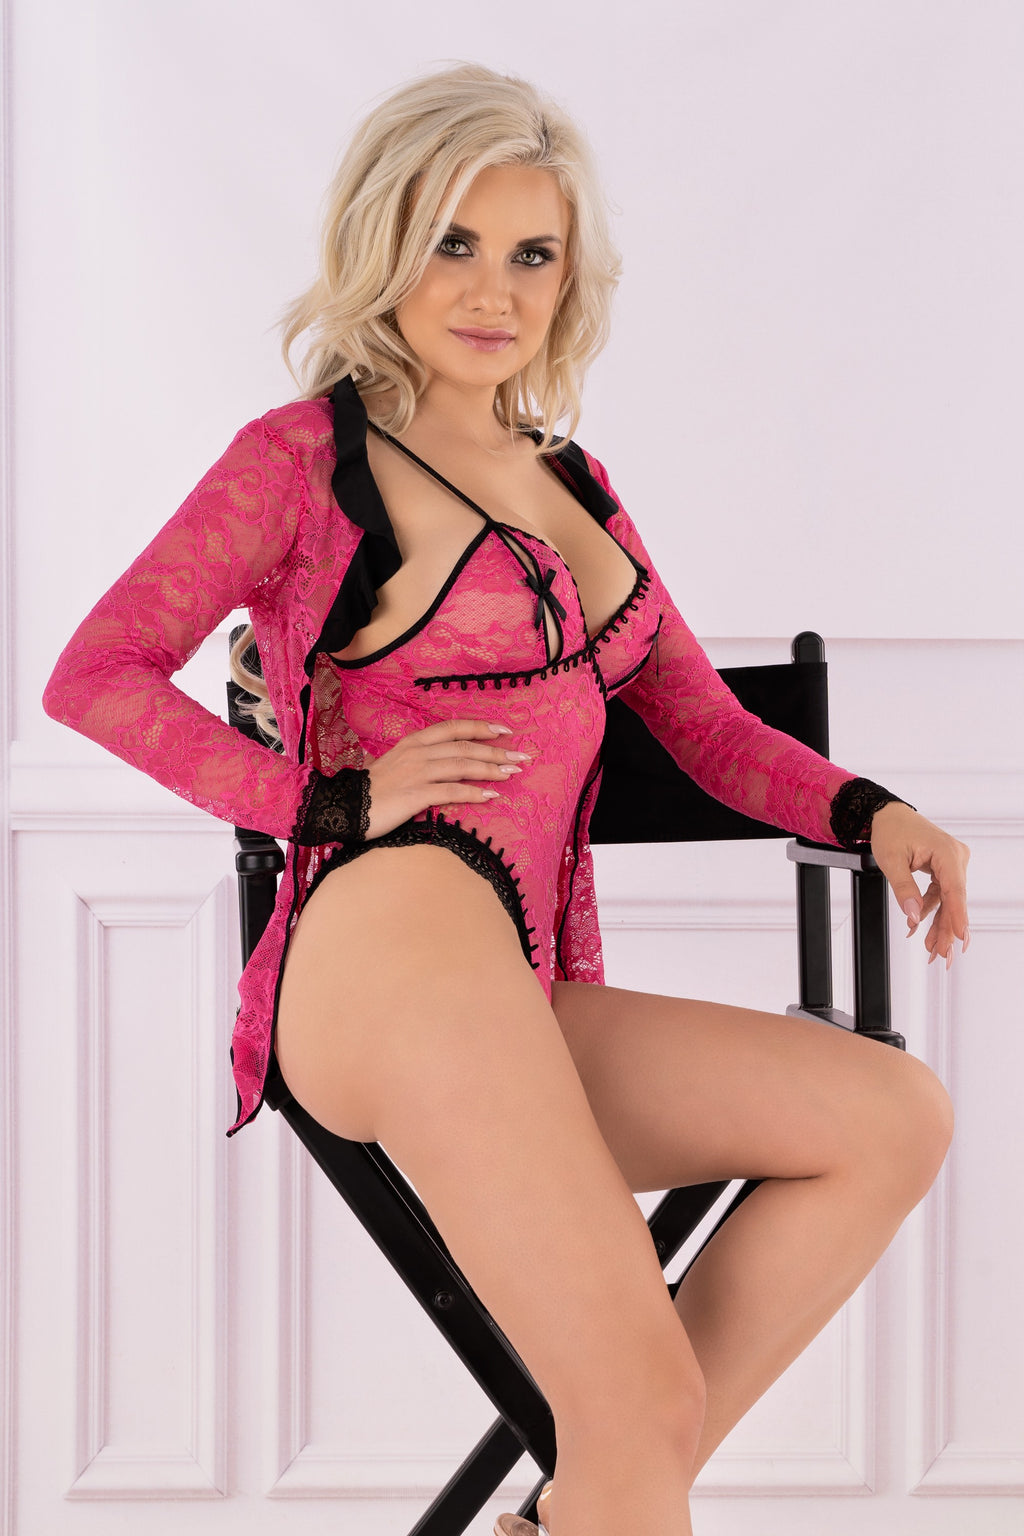 Miloviss Pink Lace Bodysuit With Black Inserts At The Groin - EVOLESCENT